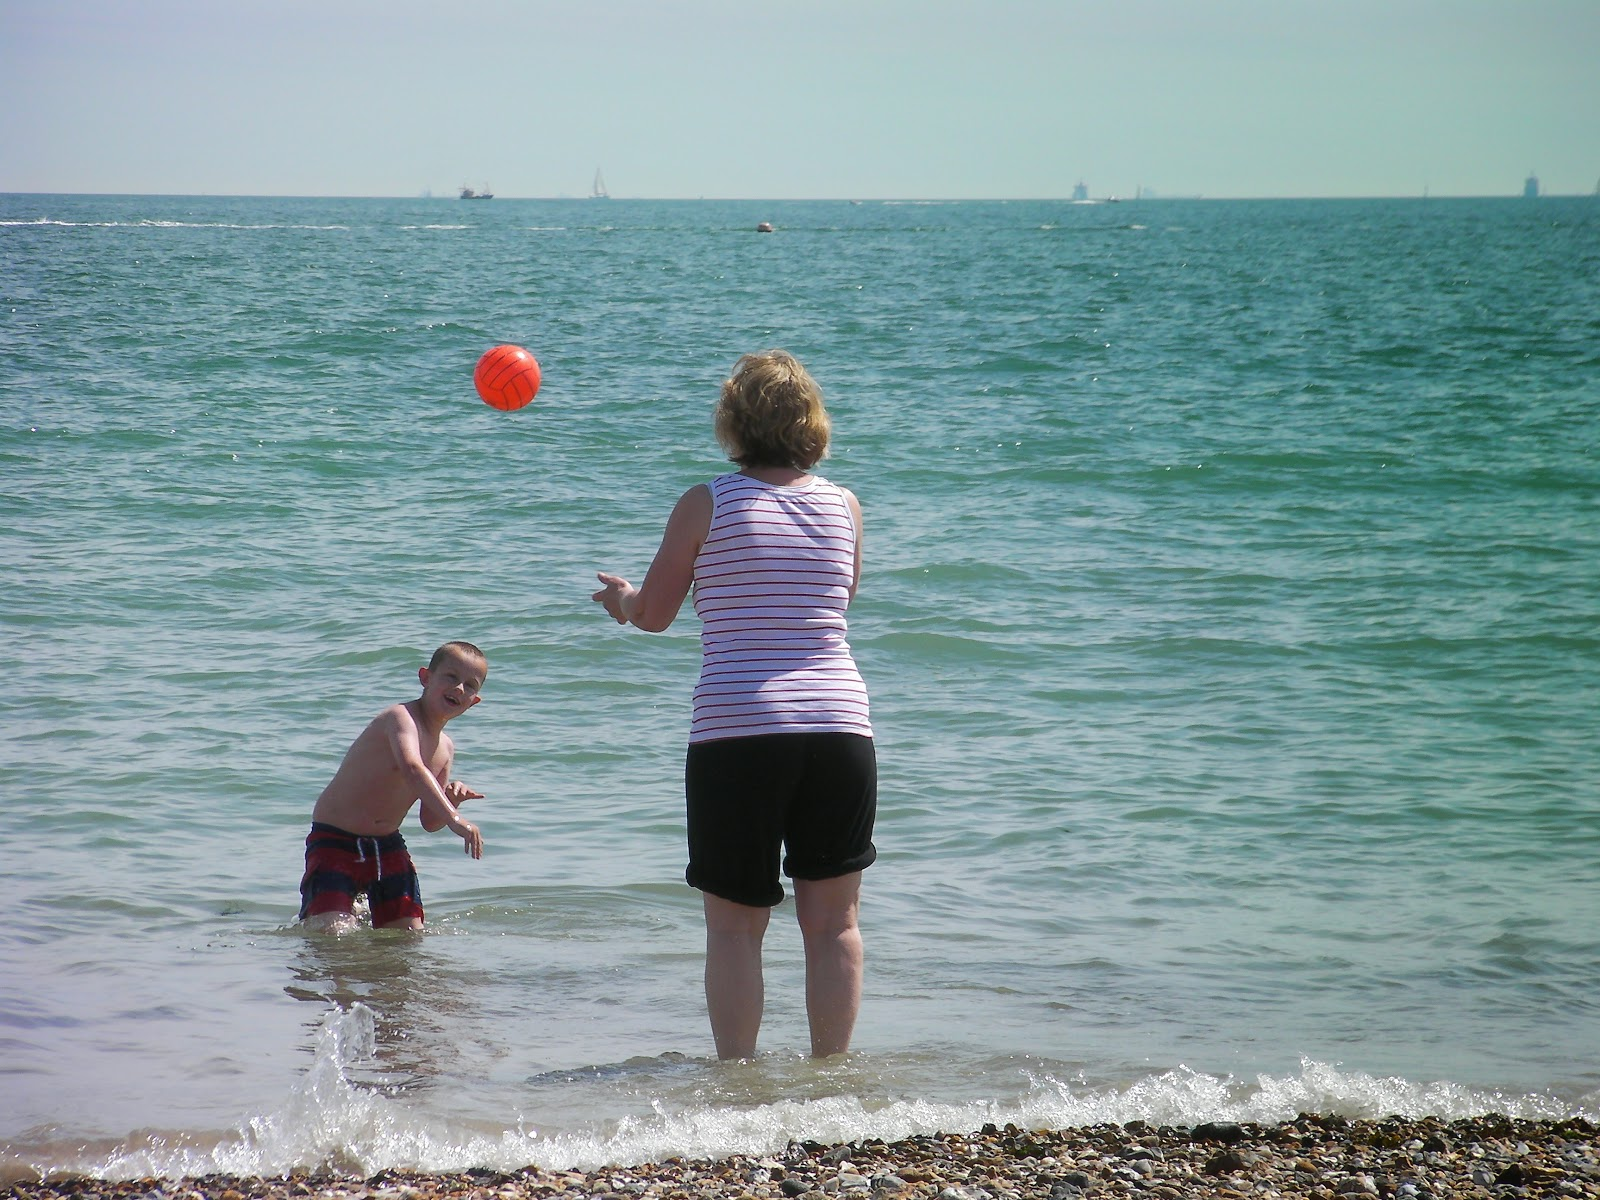 southsea beach in the summer